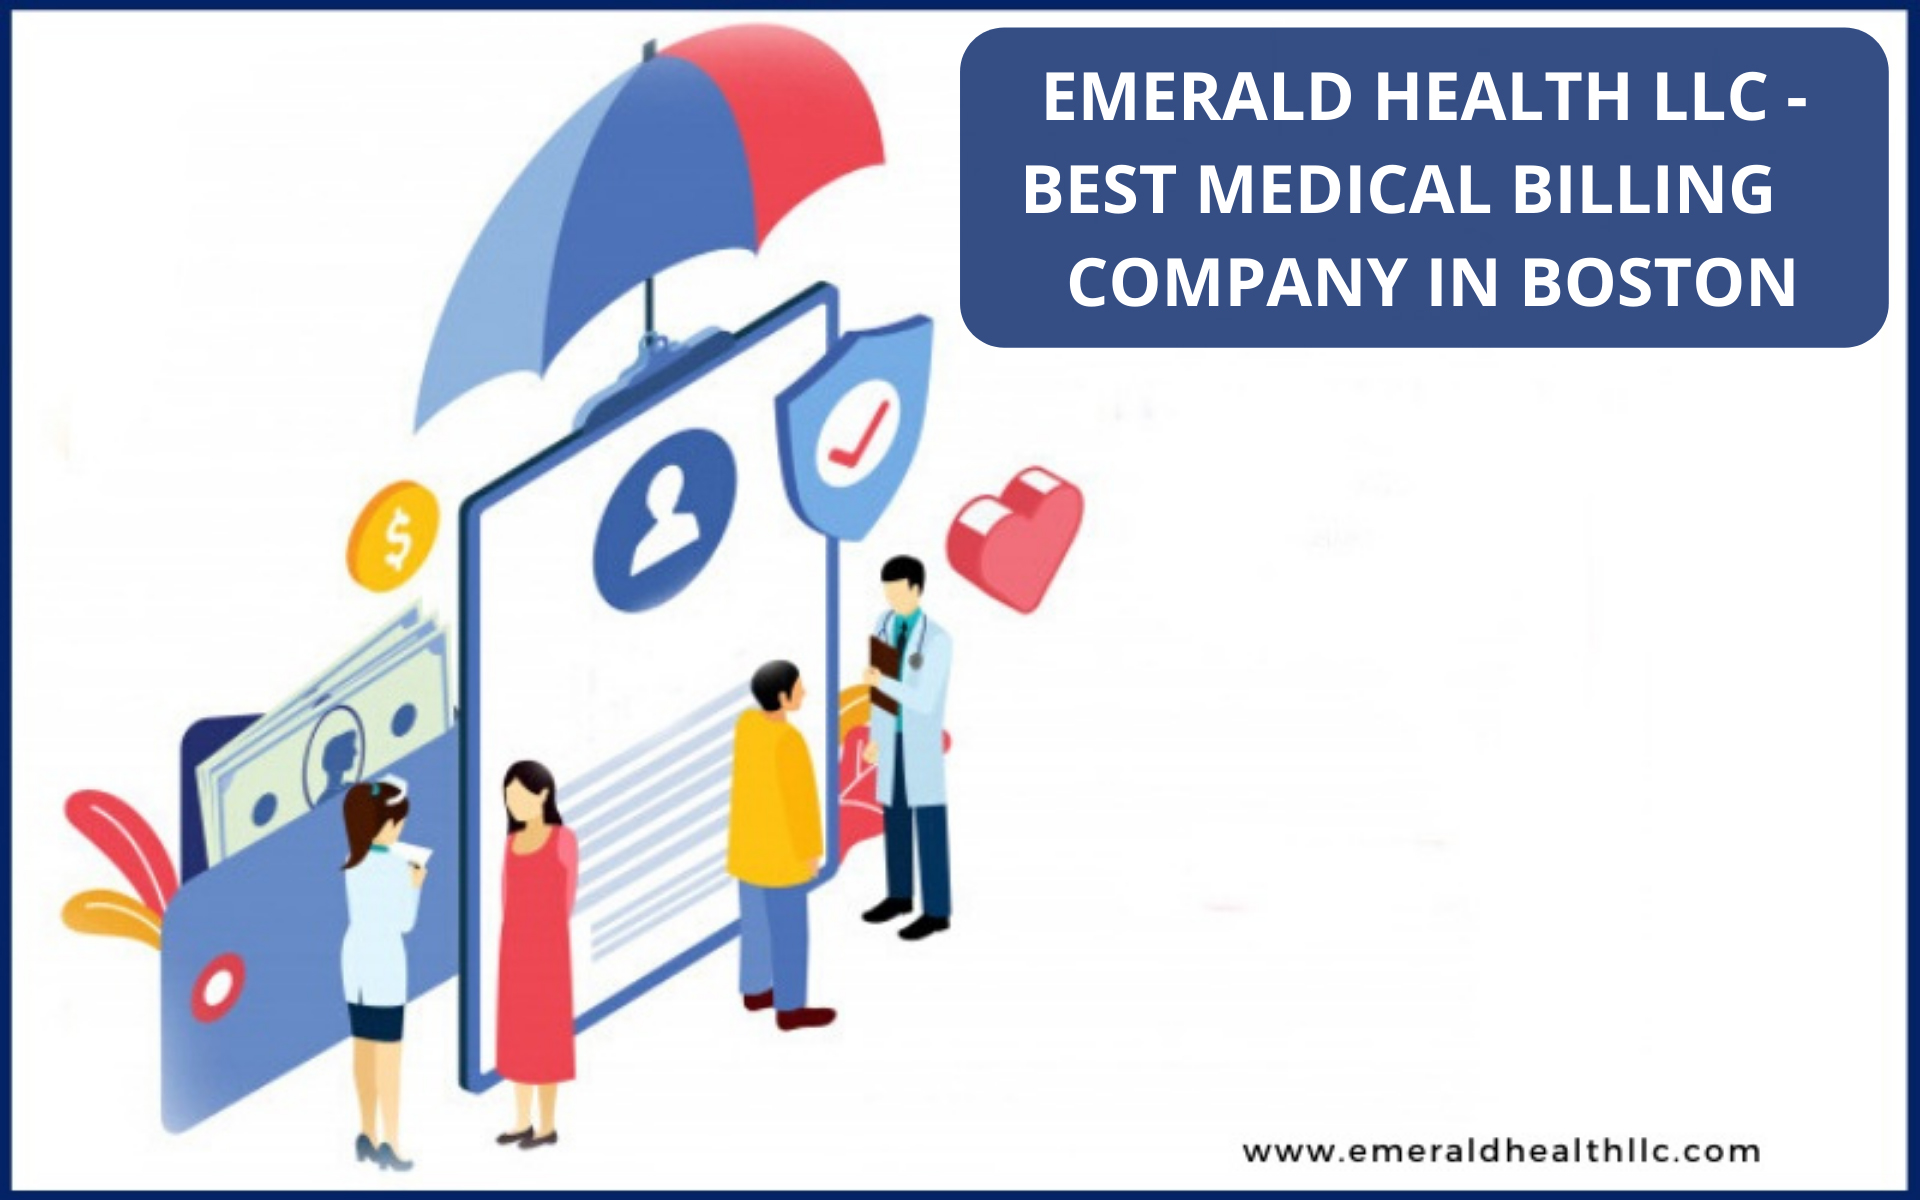 emerald-health-best-medical-billing-company-in-boston-services